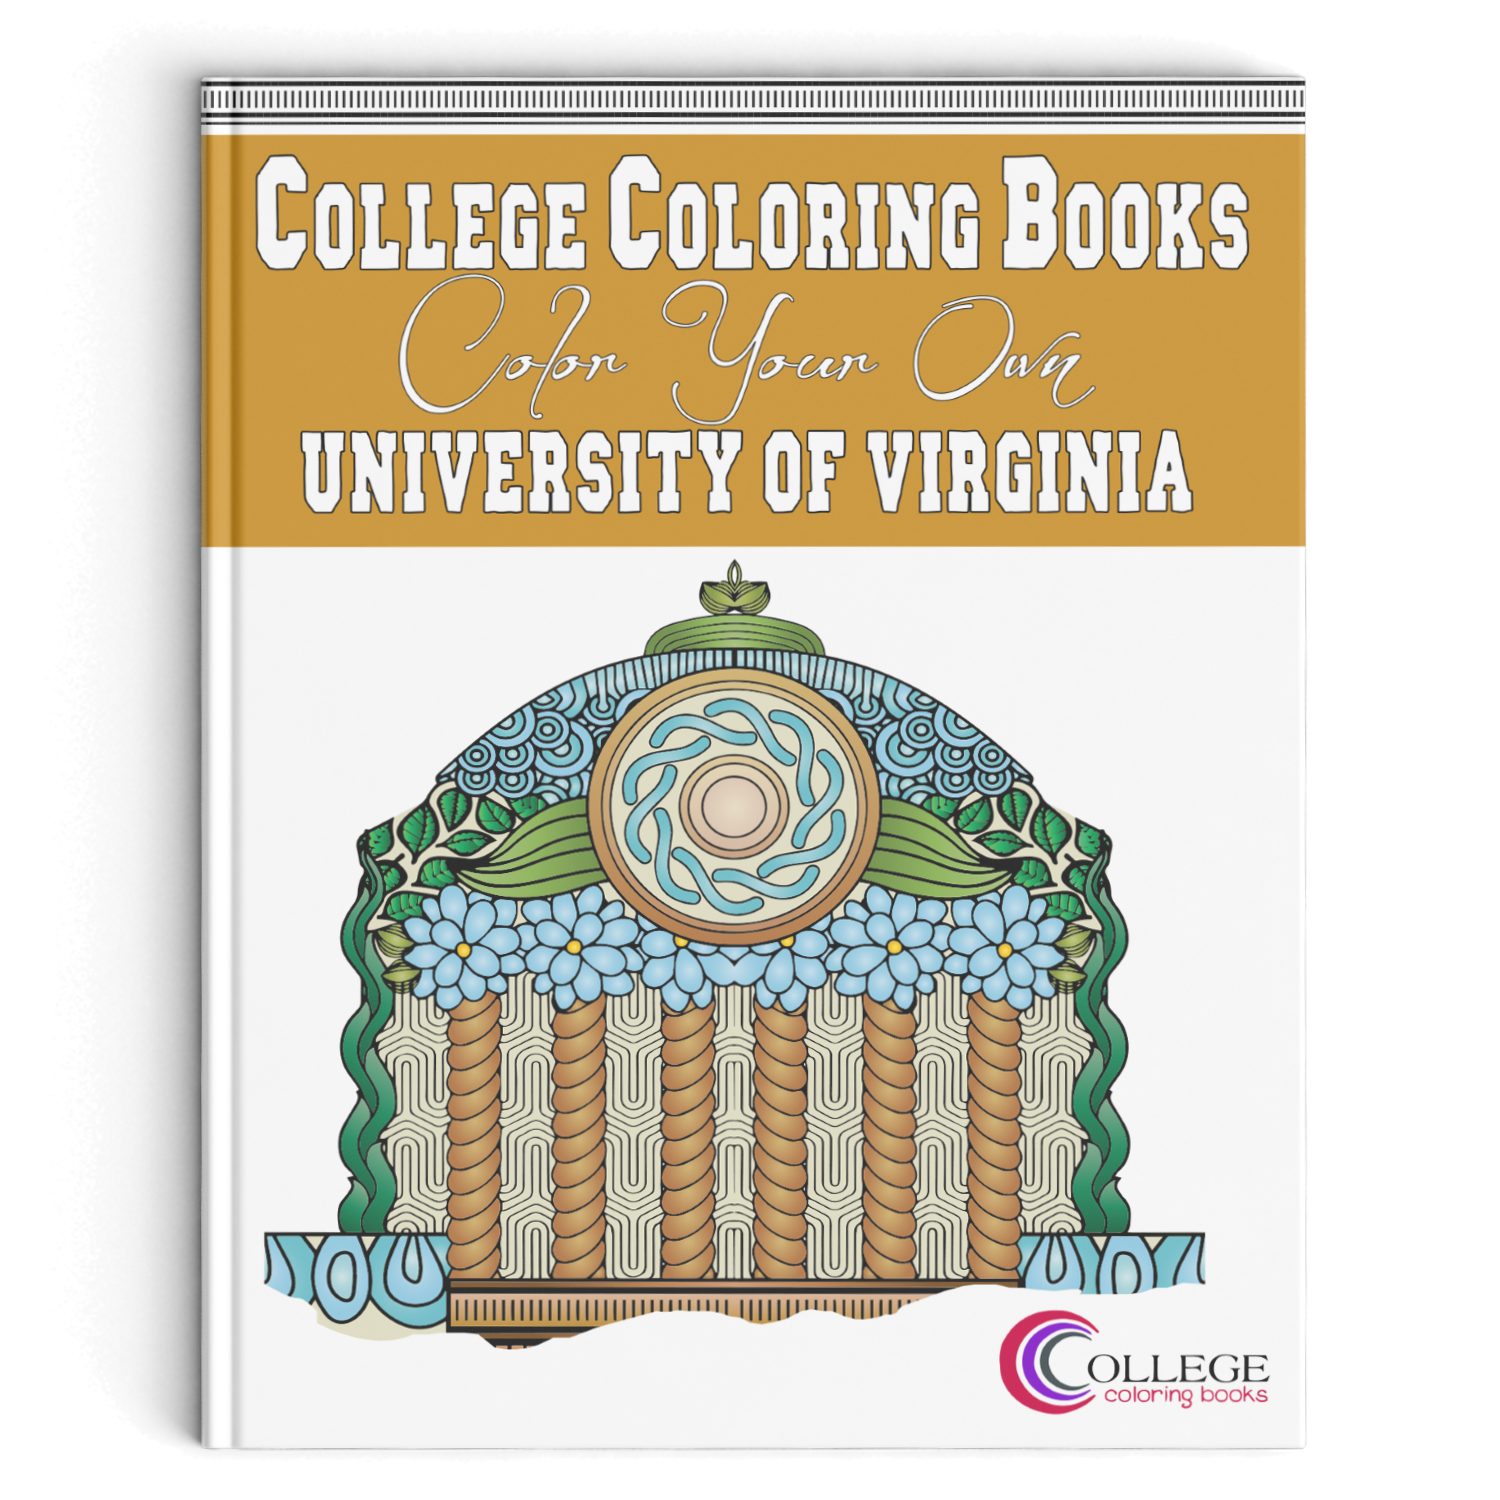 Book Cover For College : College coloring books color your own university of virginia